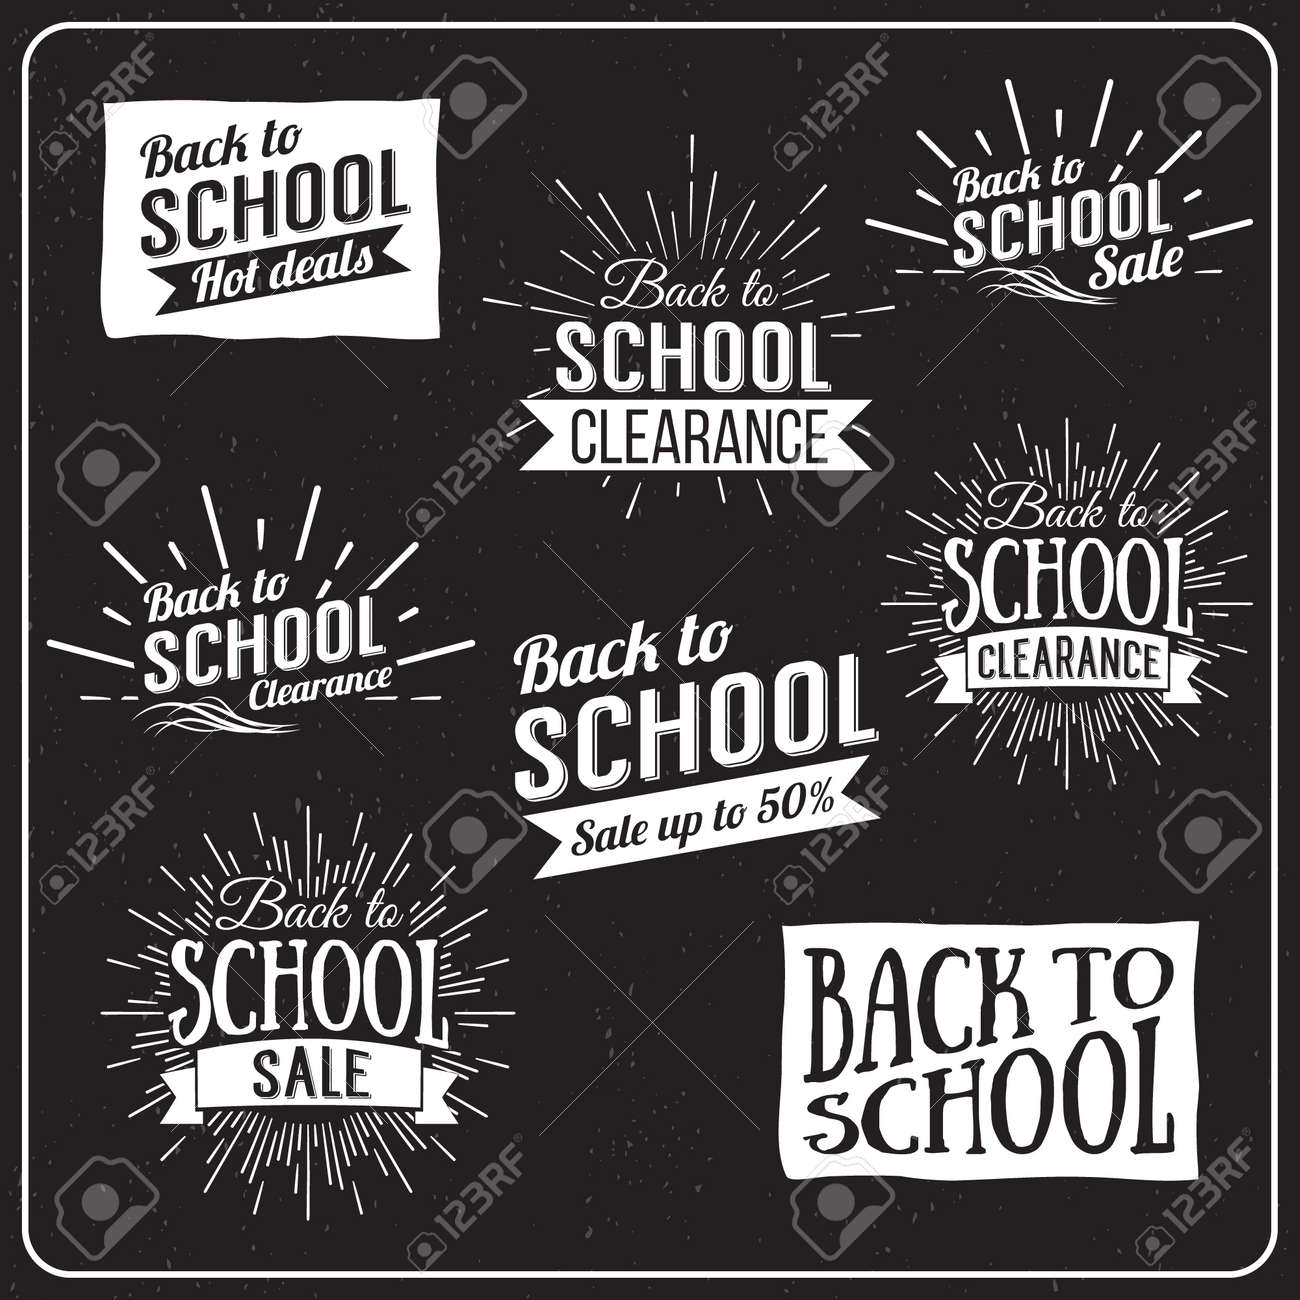 Back to School Typographic - Vintage Style Back to School Hot Deals Design Layout In Vector Format - 42450858